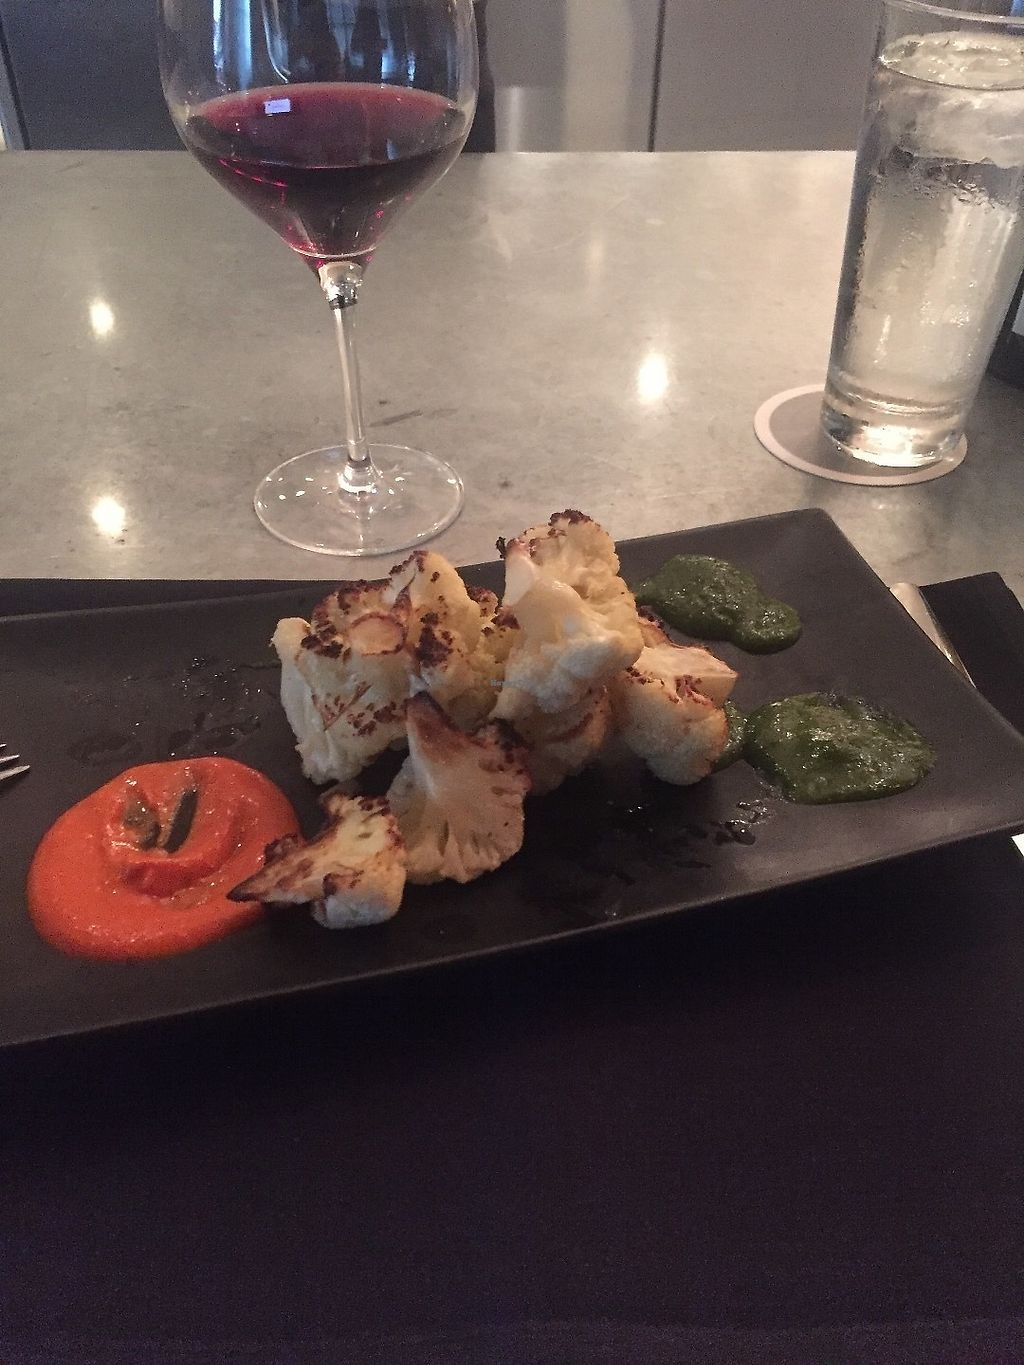 """Photo of Etch  by <a href=""""/members/profile/KaitlynnGill"""">KaitlynnGill</a> <br/>Roasted cauliflower  <br/> June 18, 2017  - <a href='/contact/abuse/image/94339/270666'>Report</a>"""